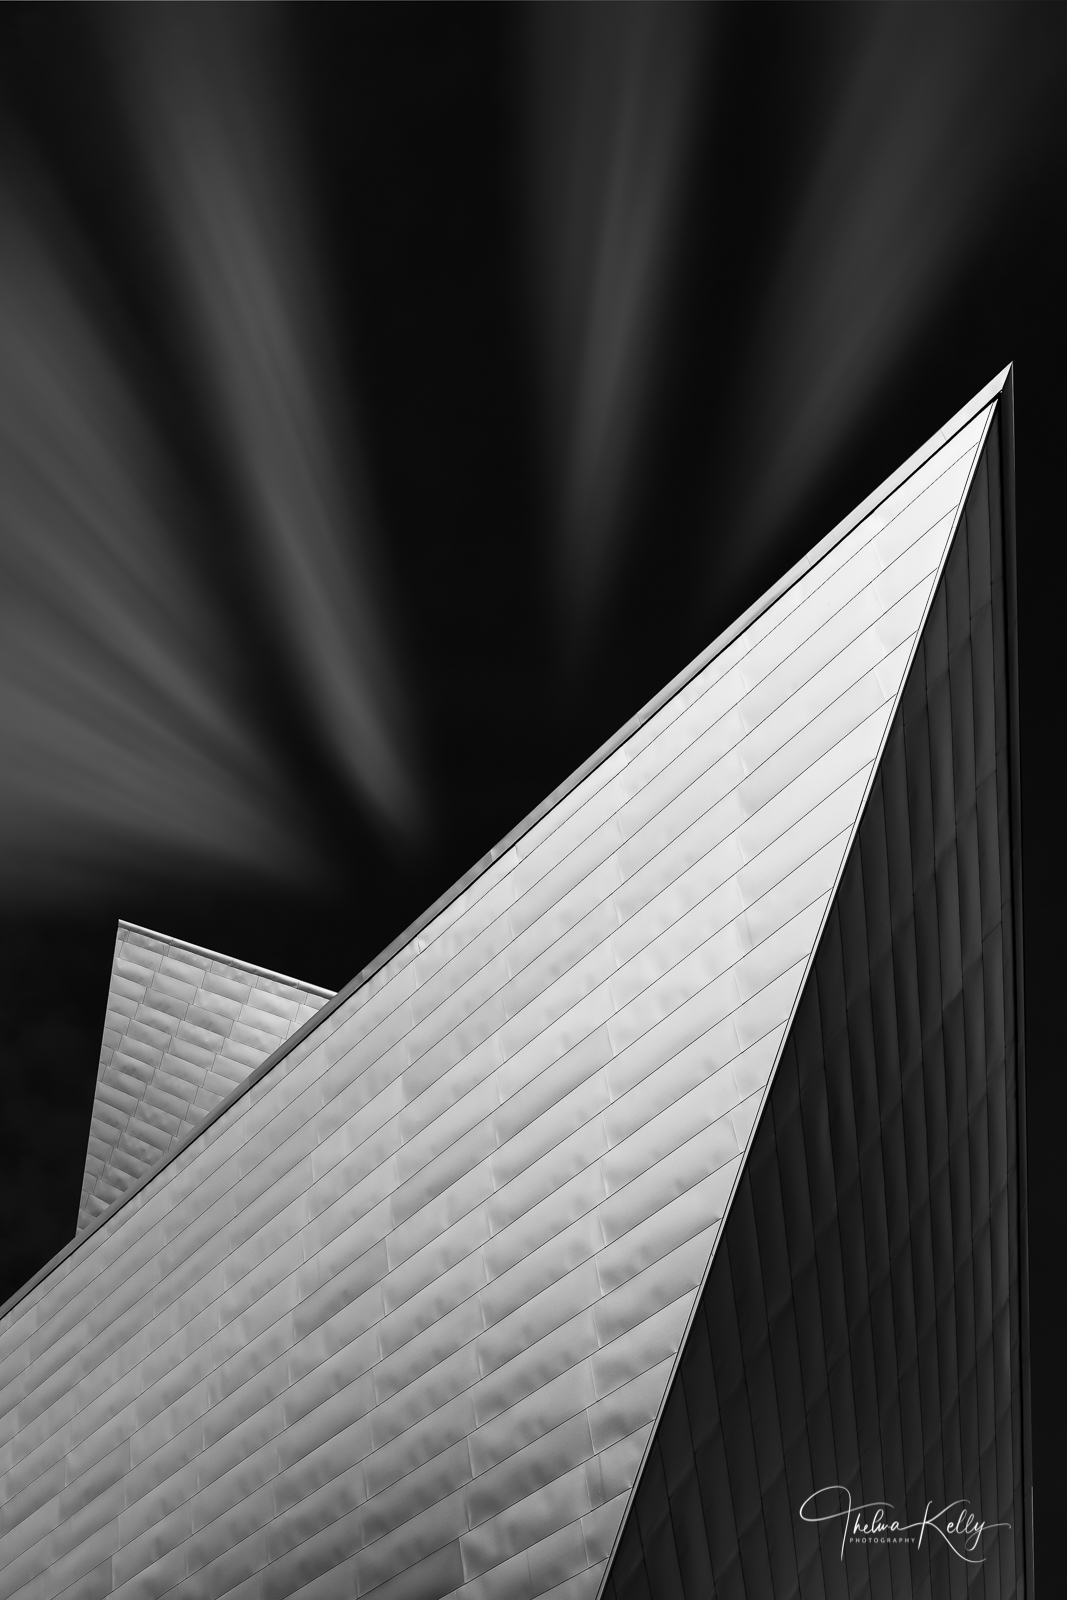 Covered in 230,000 sq.ft. of titanium panels the Denver Art Museum's geometric pdesign pays homage to the nearby Rocky Mountains...